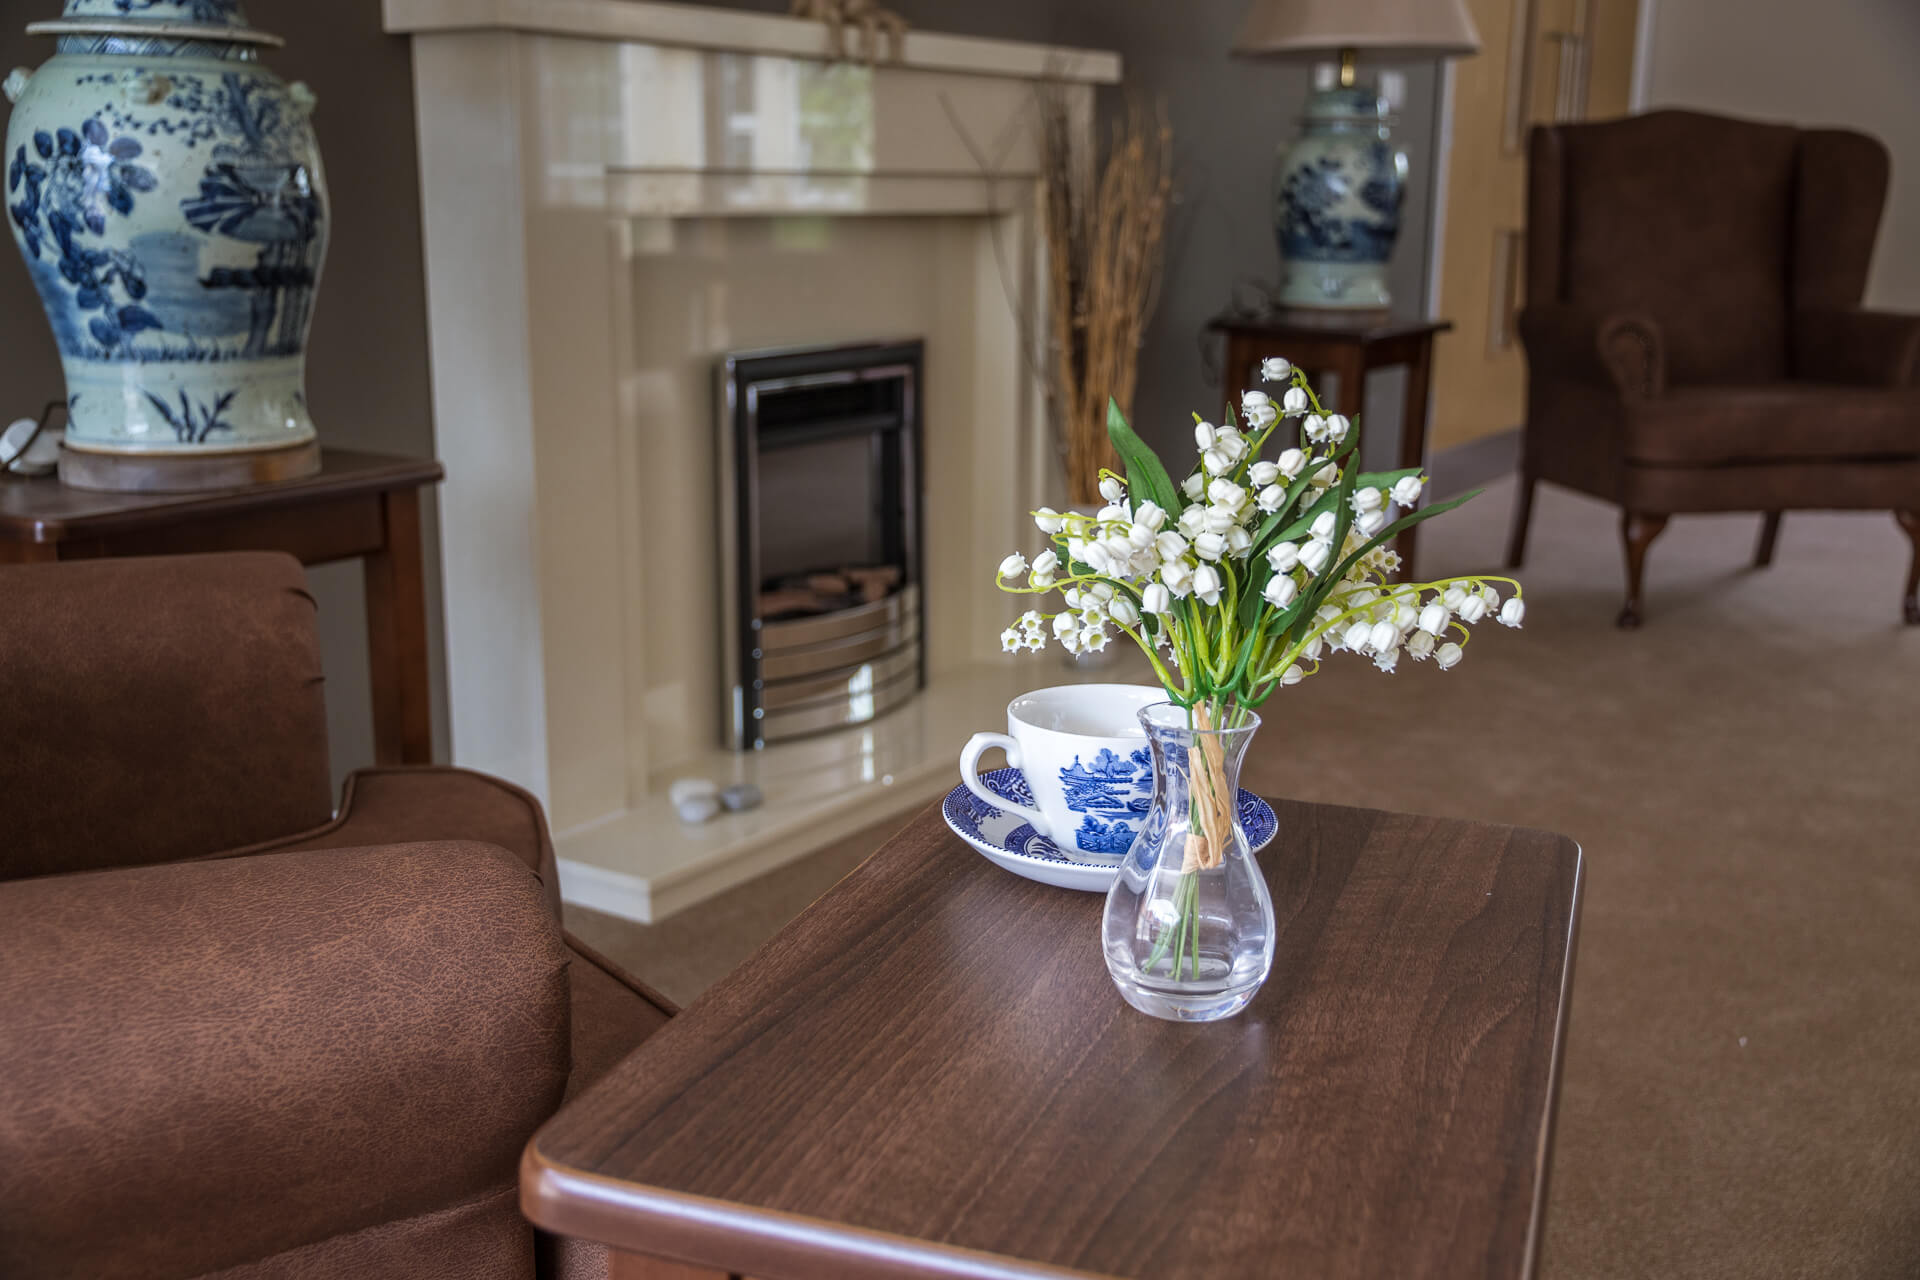 A colour image of part of the interior furniture within a community room at The Lawns Care Home, Kempsey, Worcestershire. It shows (in close up) part of an occasional table, with a blue and white cup & saucer, and a small vase with snowdrops upon it.  There is also a gas fire place and sections of two brown coloured high back armchairs within view.